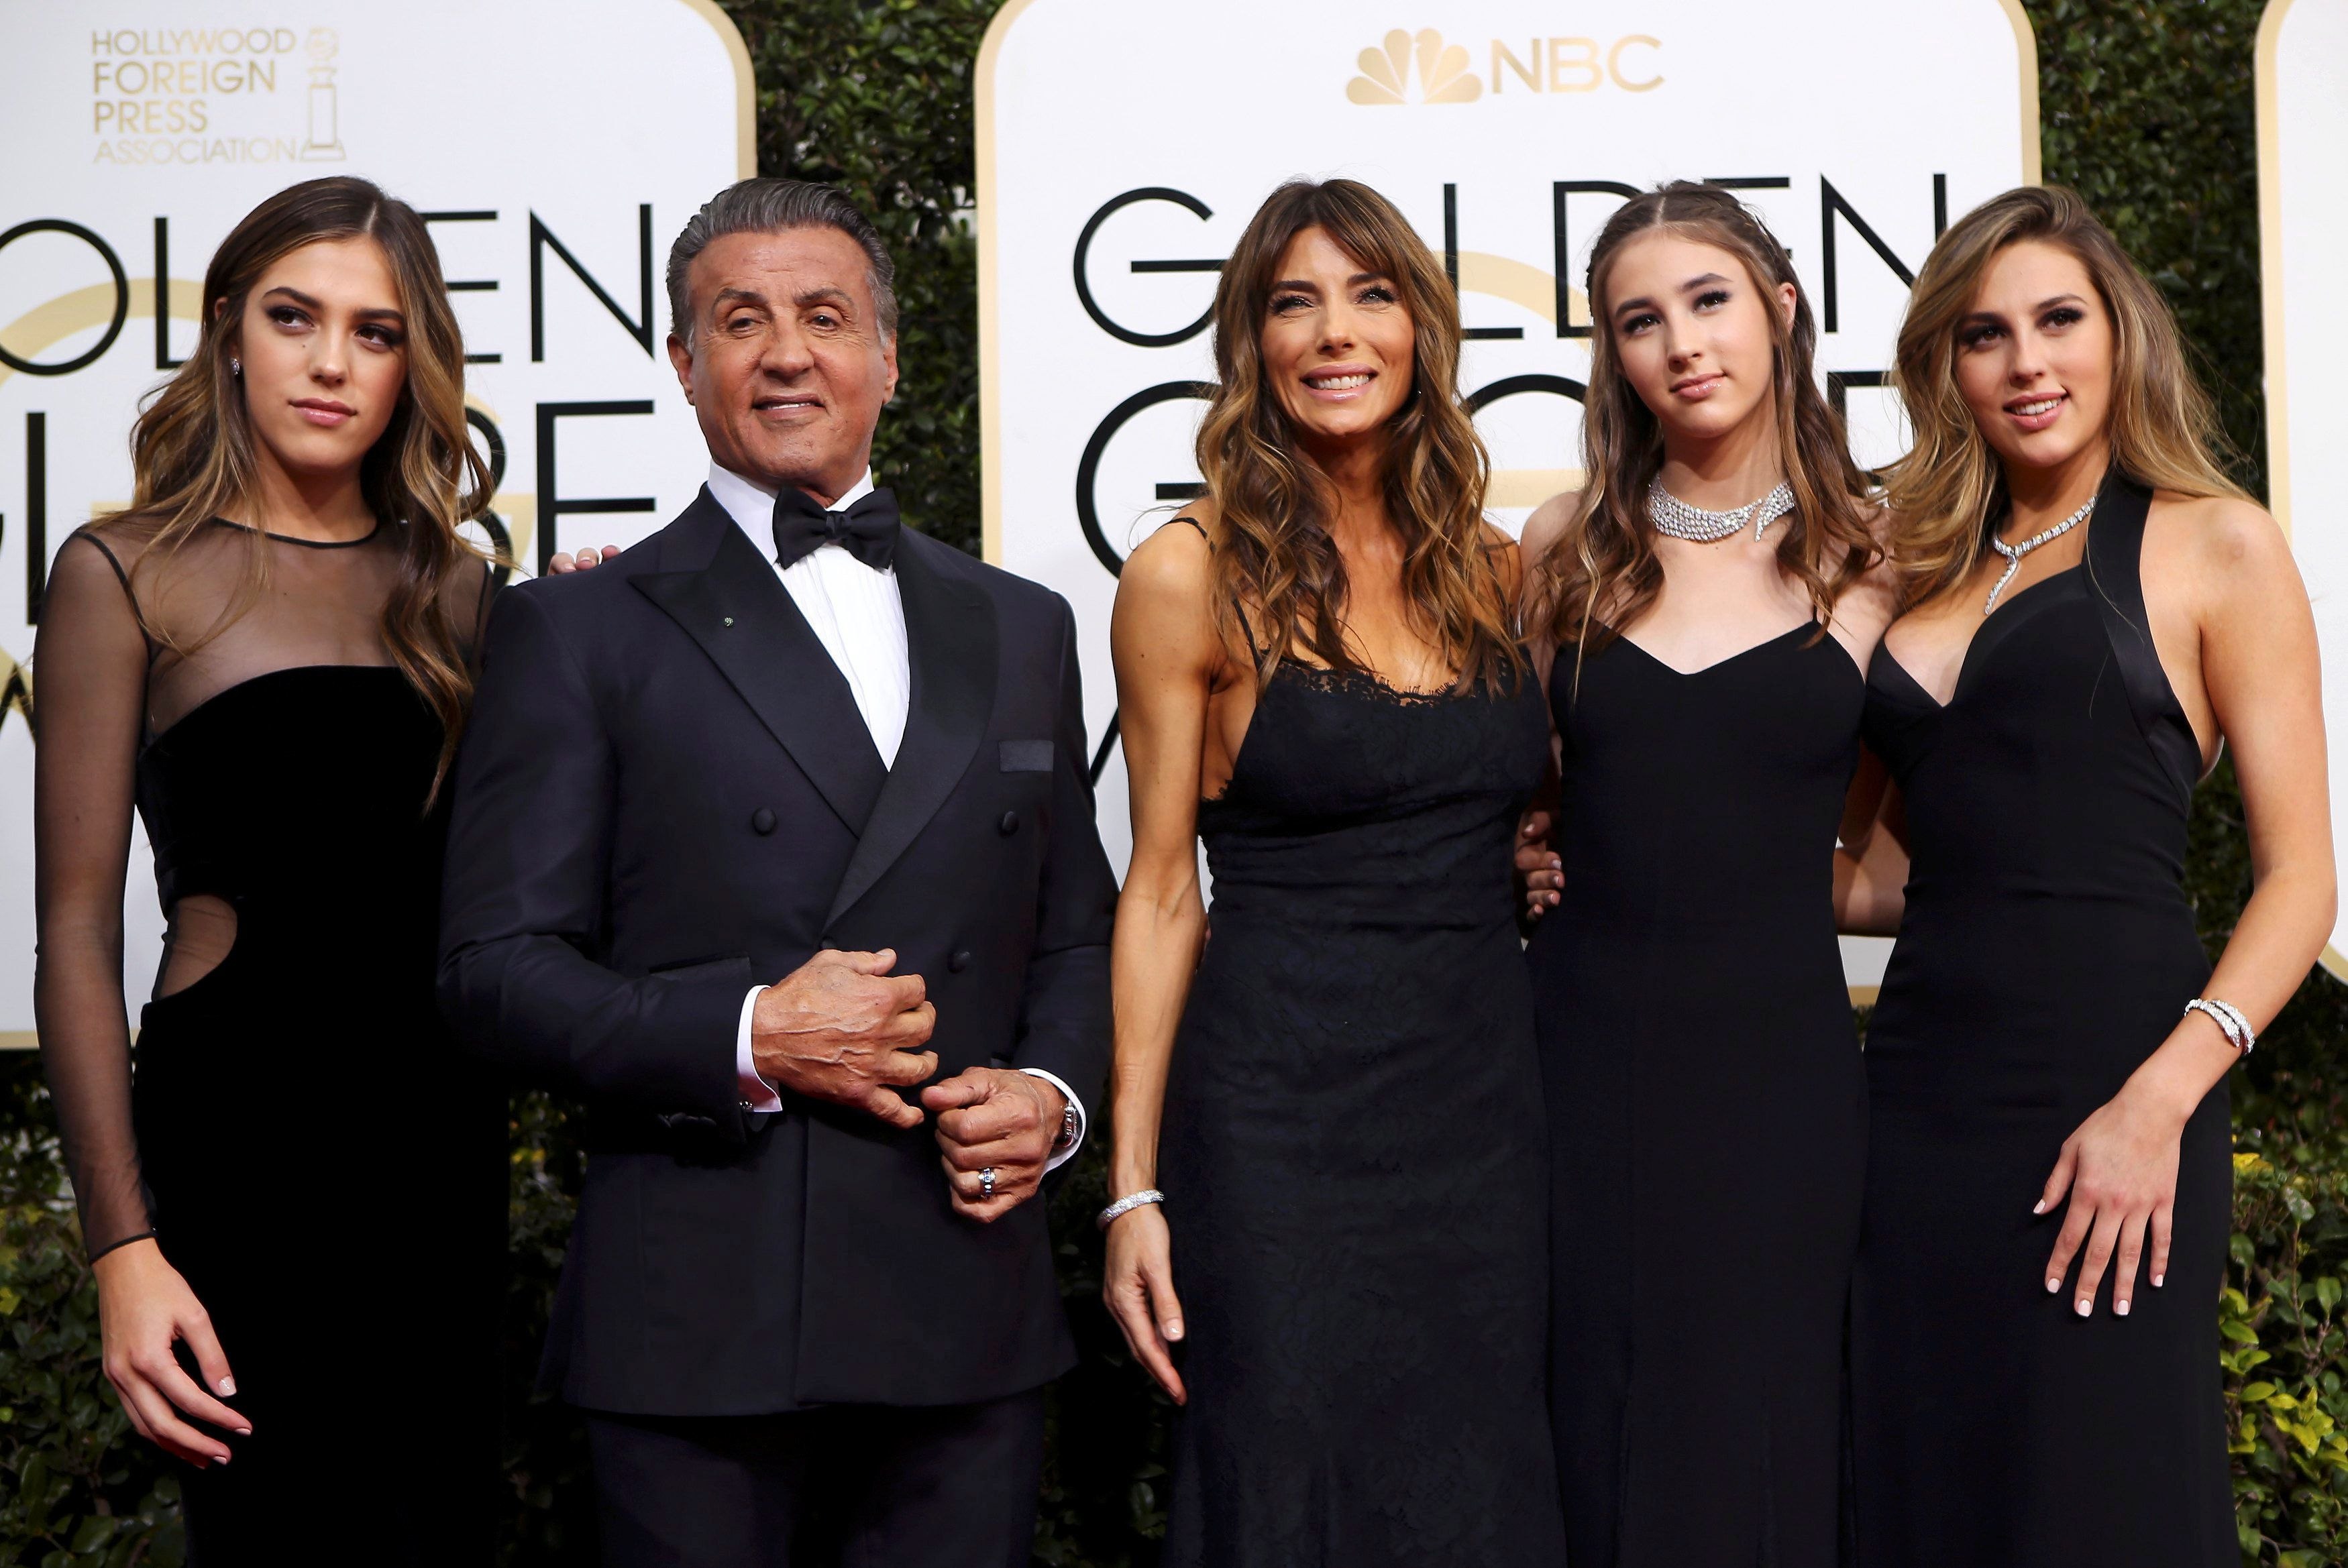 Actor Sylvester Stallone poses with his wife Jennifer Flavin (C), and their daughters, Sistine Stallone (L), Scarlet Stallone (2nd R) and Sophia Stallone during the 74th Annual Golden Globe Awards.